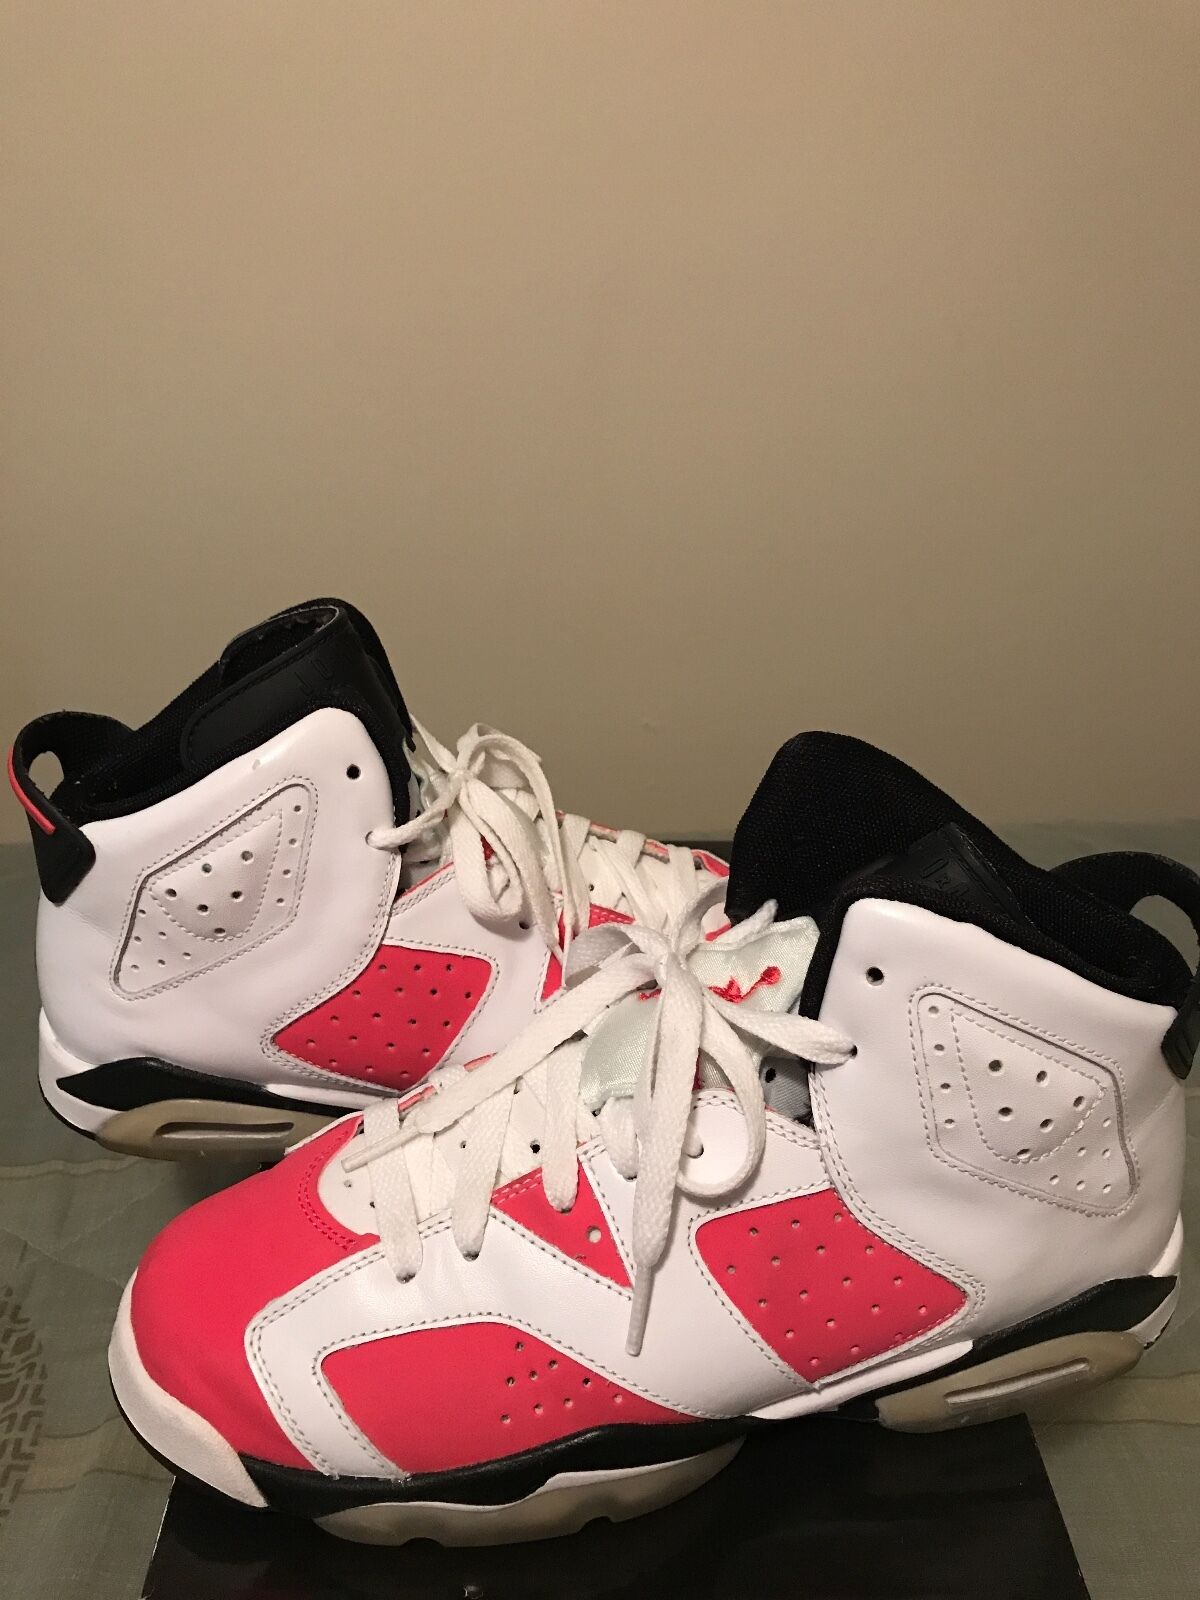 2009 Retro Jordan 6 Size 7 in Good Condition